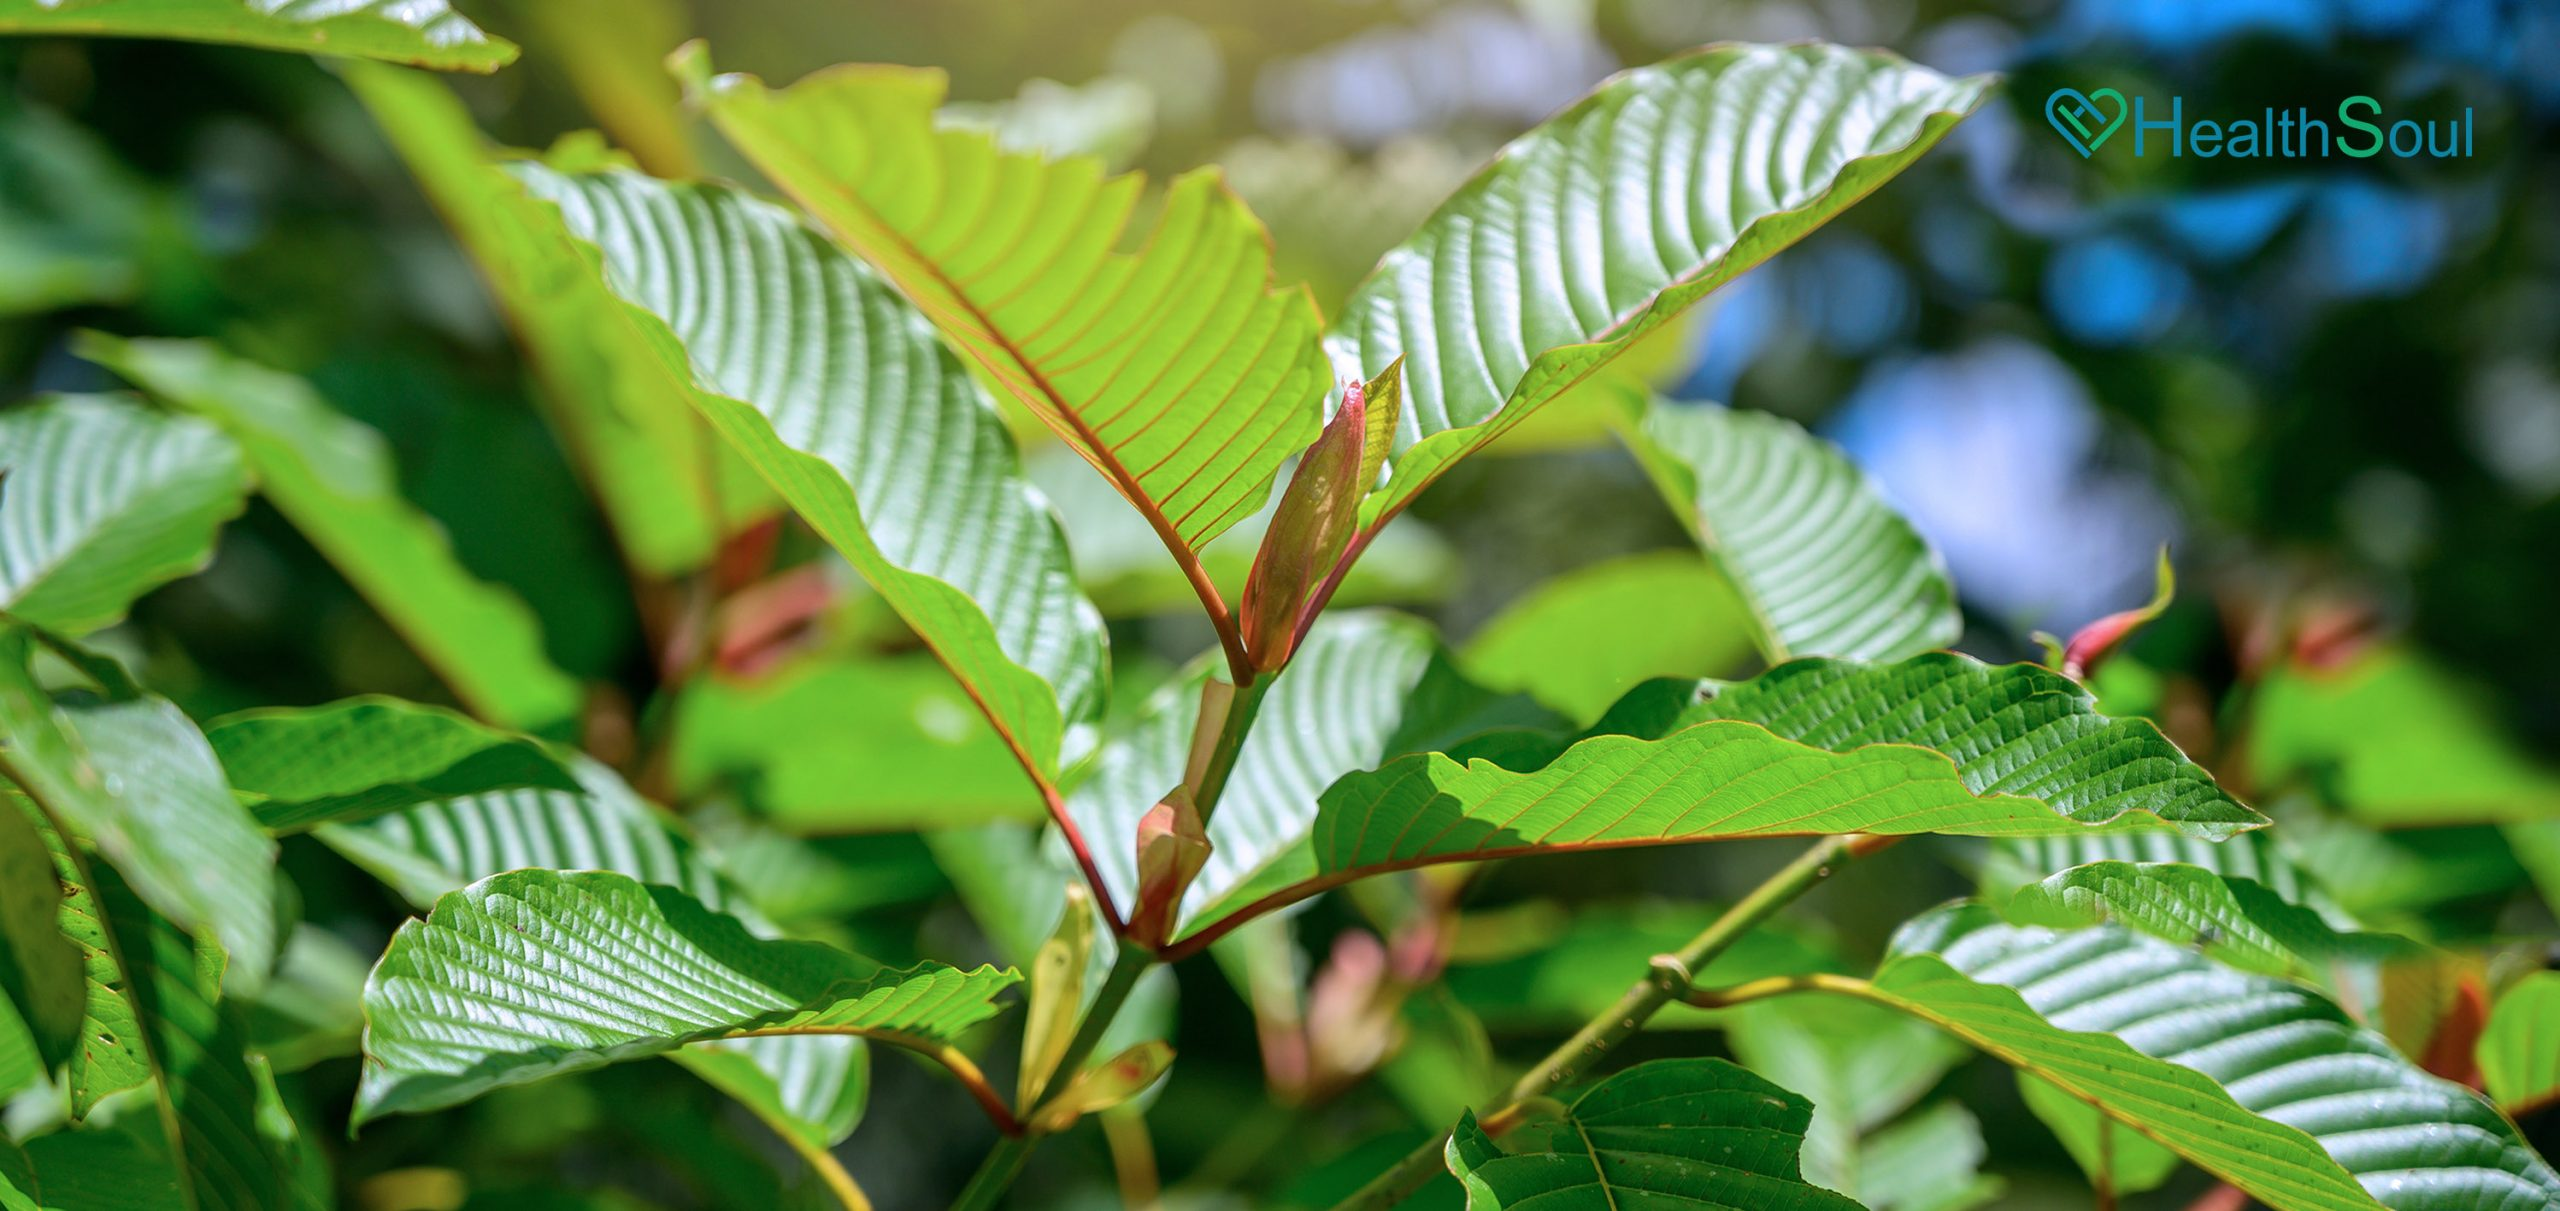 How To Maintain A Healthy Body With Premium Red Bali Kratom | HealthSoul